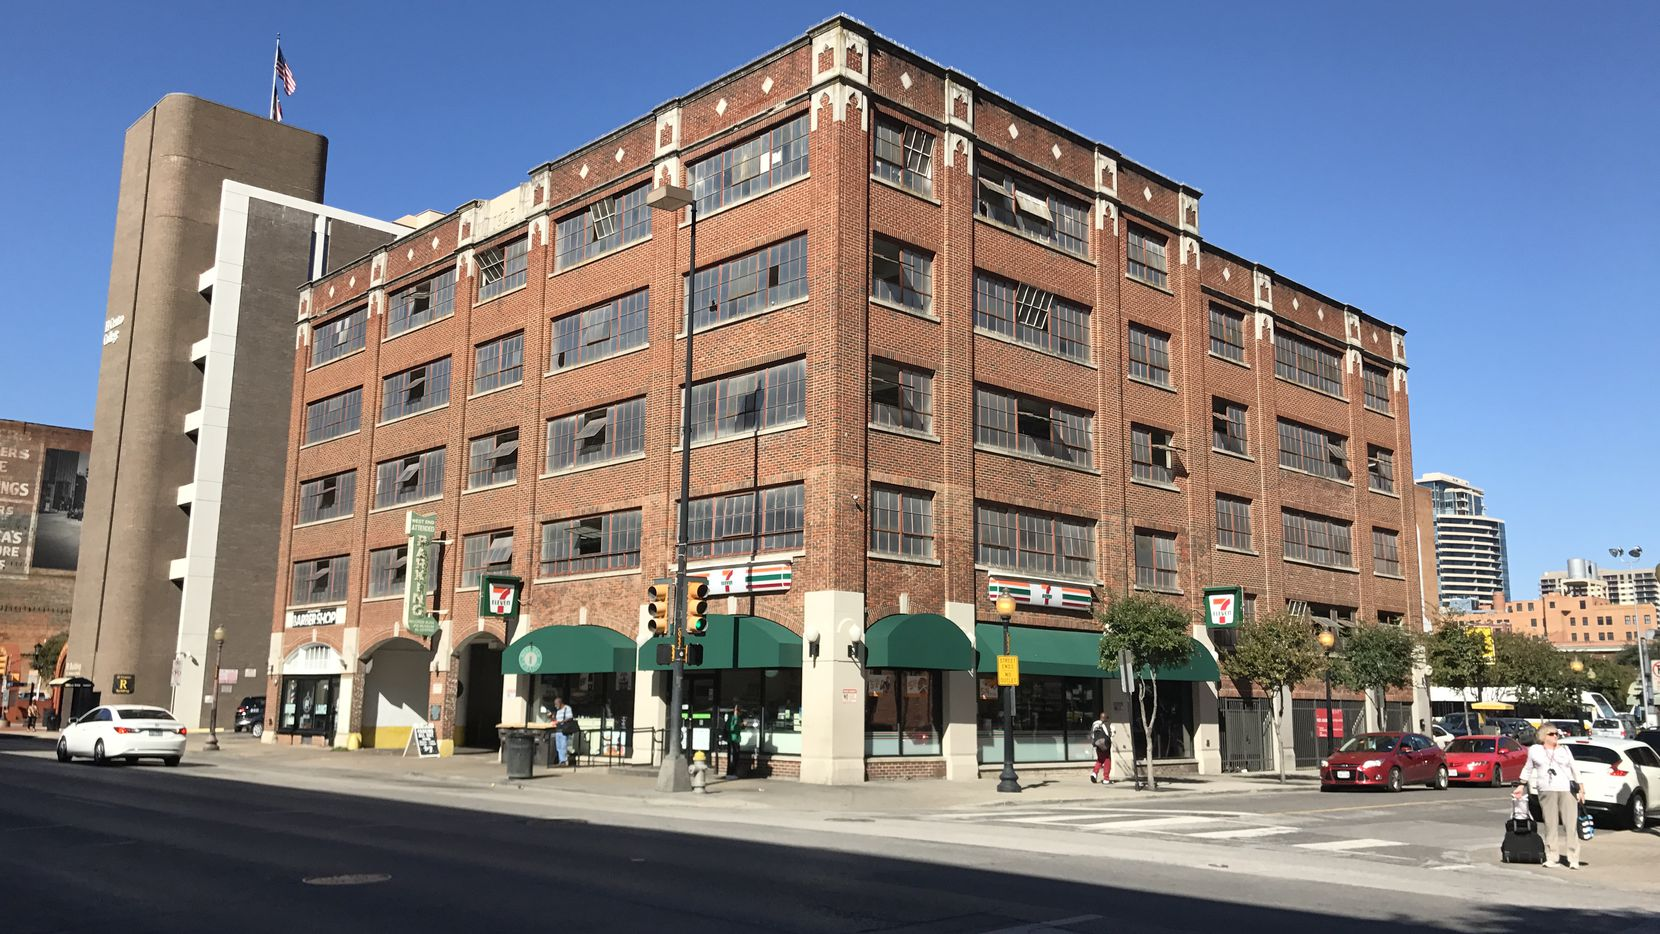 The 711 Elm Street building was constructed as a parking garage in 1925 for the Sanger Brothers department store.